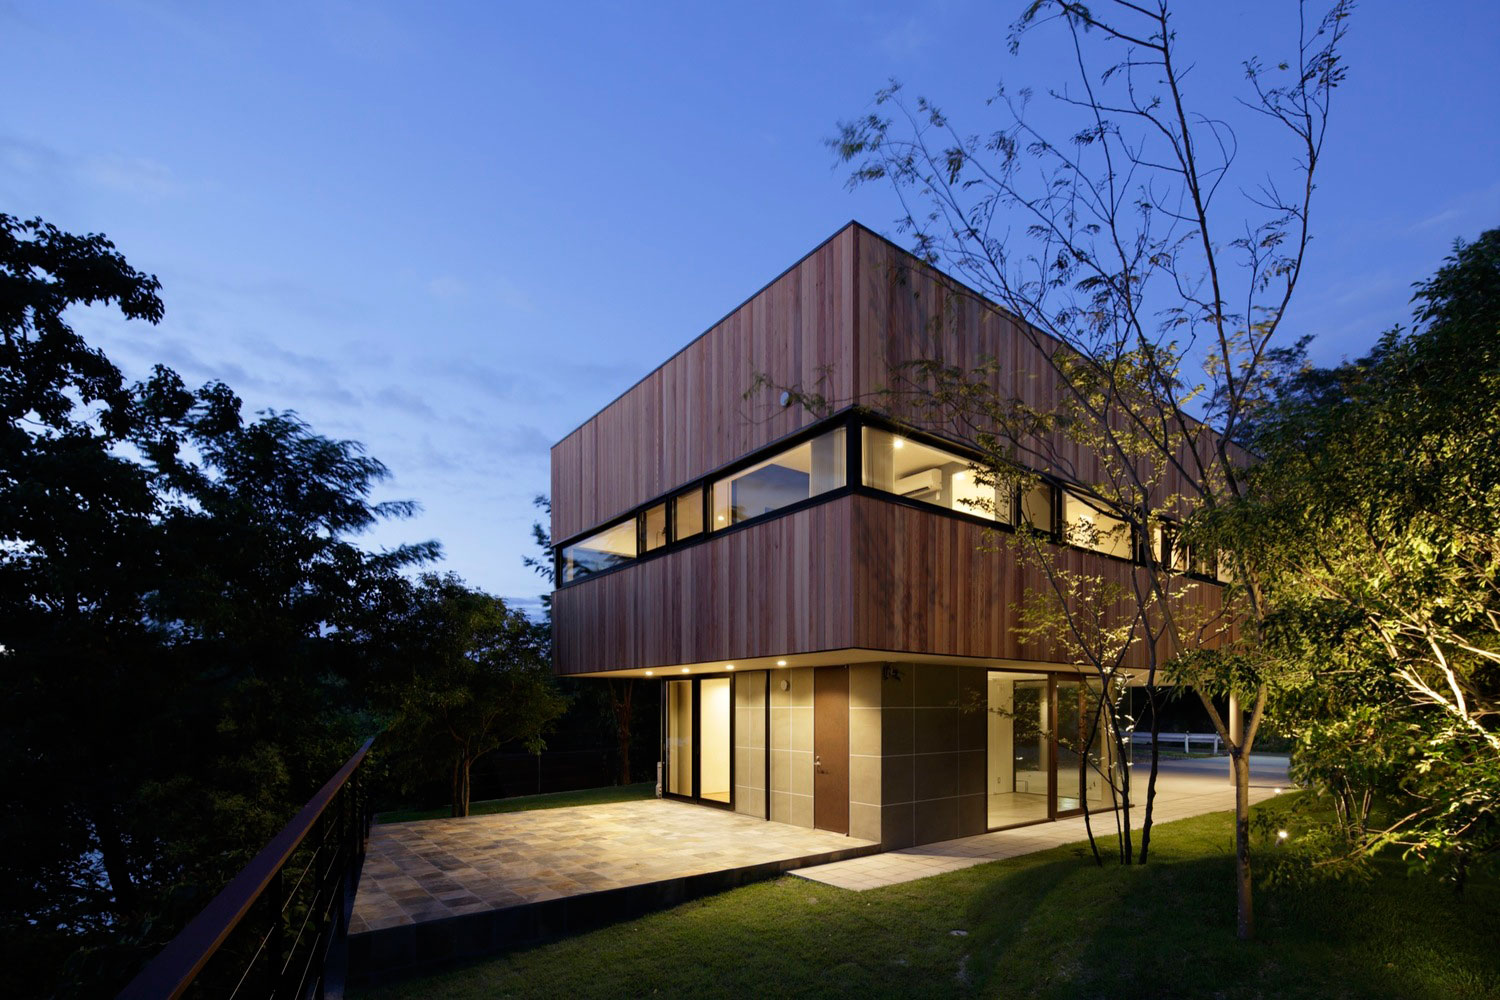 Japanese House Designed by CAPD Architects